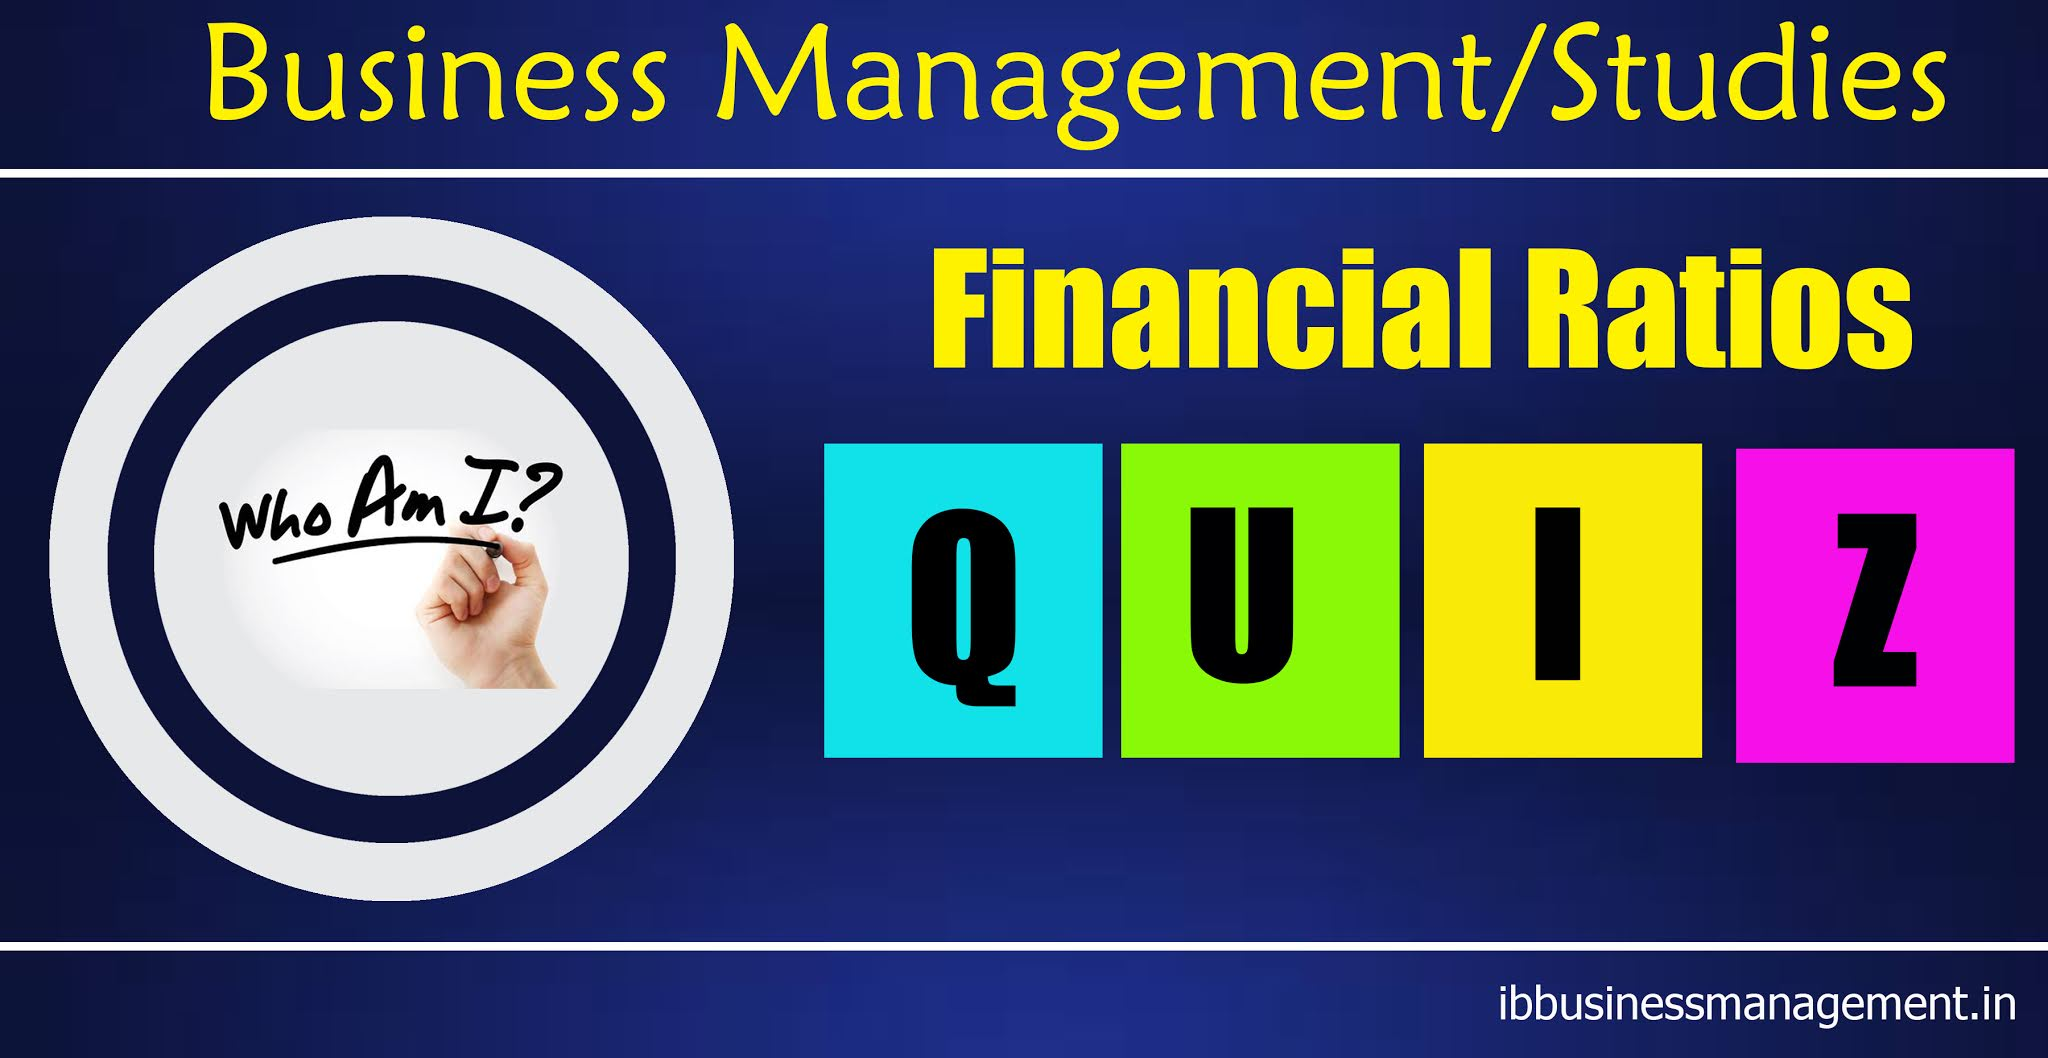 Business Management and Studies Financial Ratios Quiz